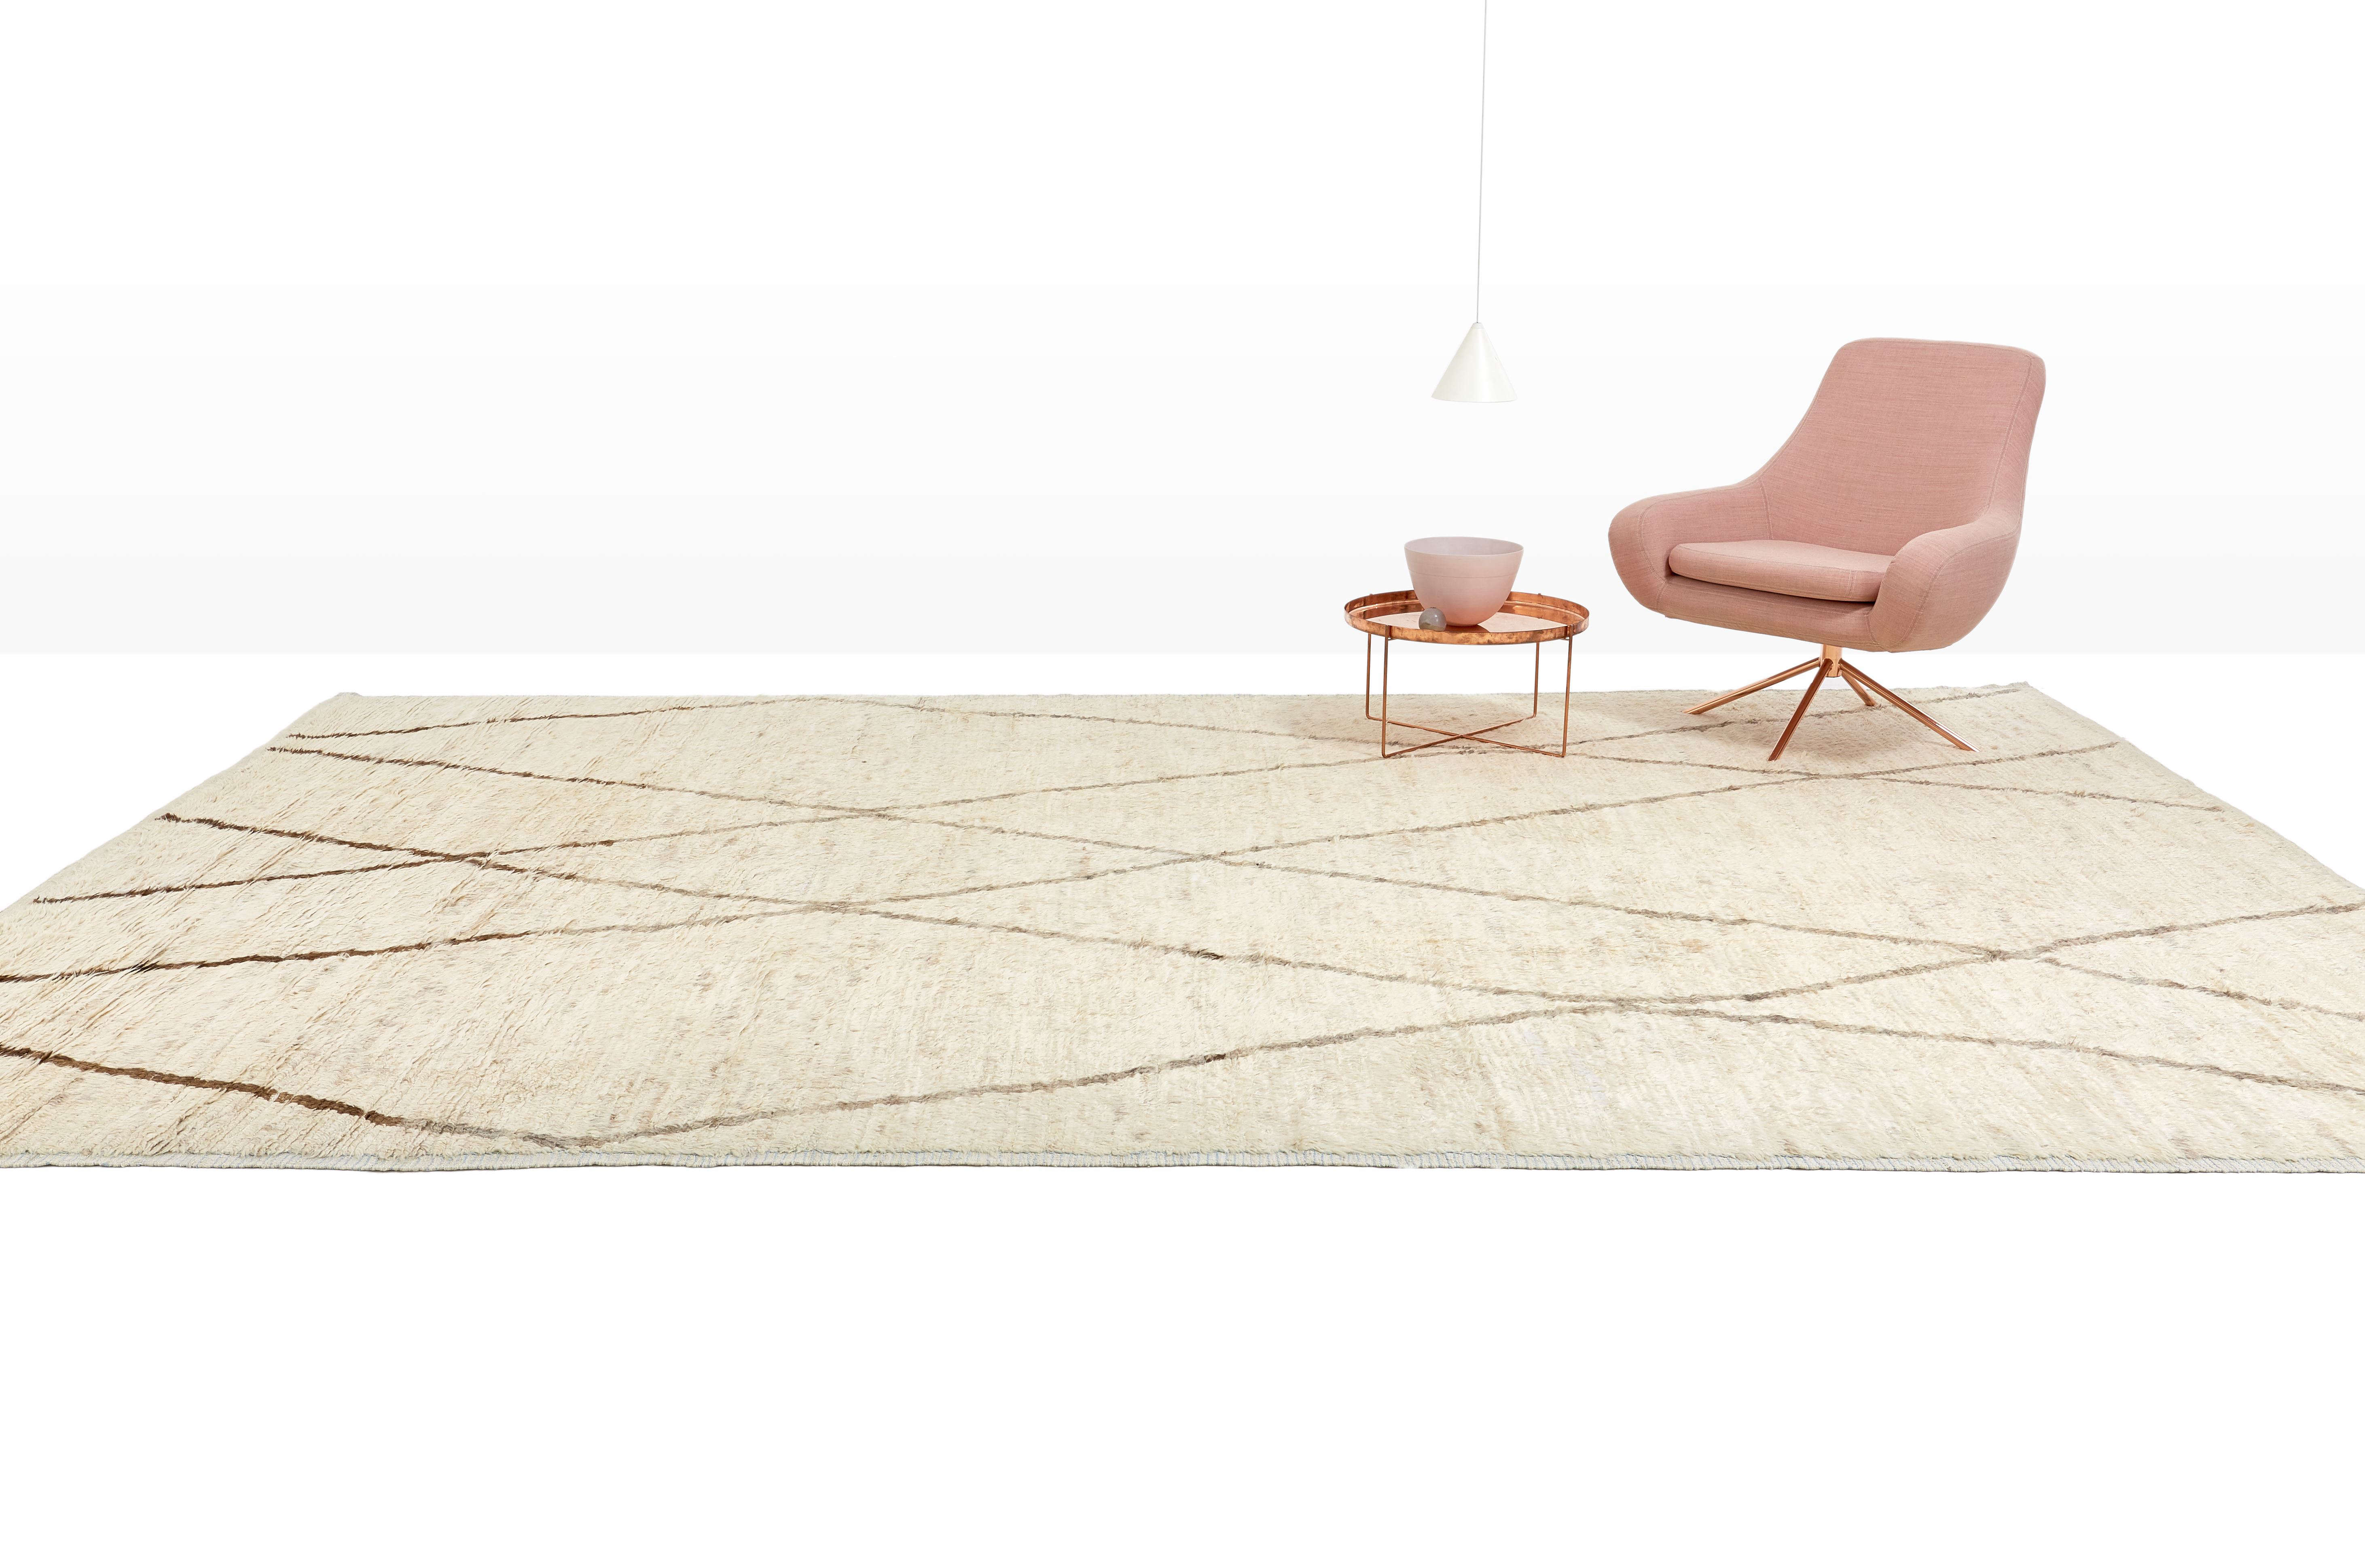 office modern carpet texture preview product spotlight. youu0027re invited the abc carpet u0026 home preview sale starts today office modern texture product spotlight o